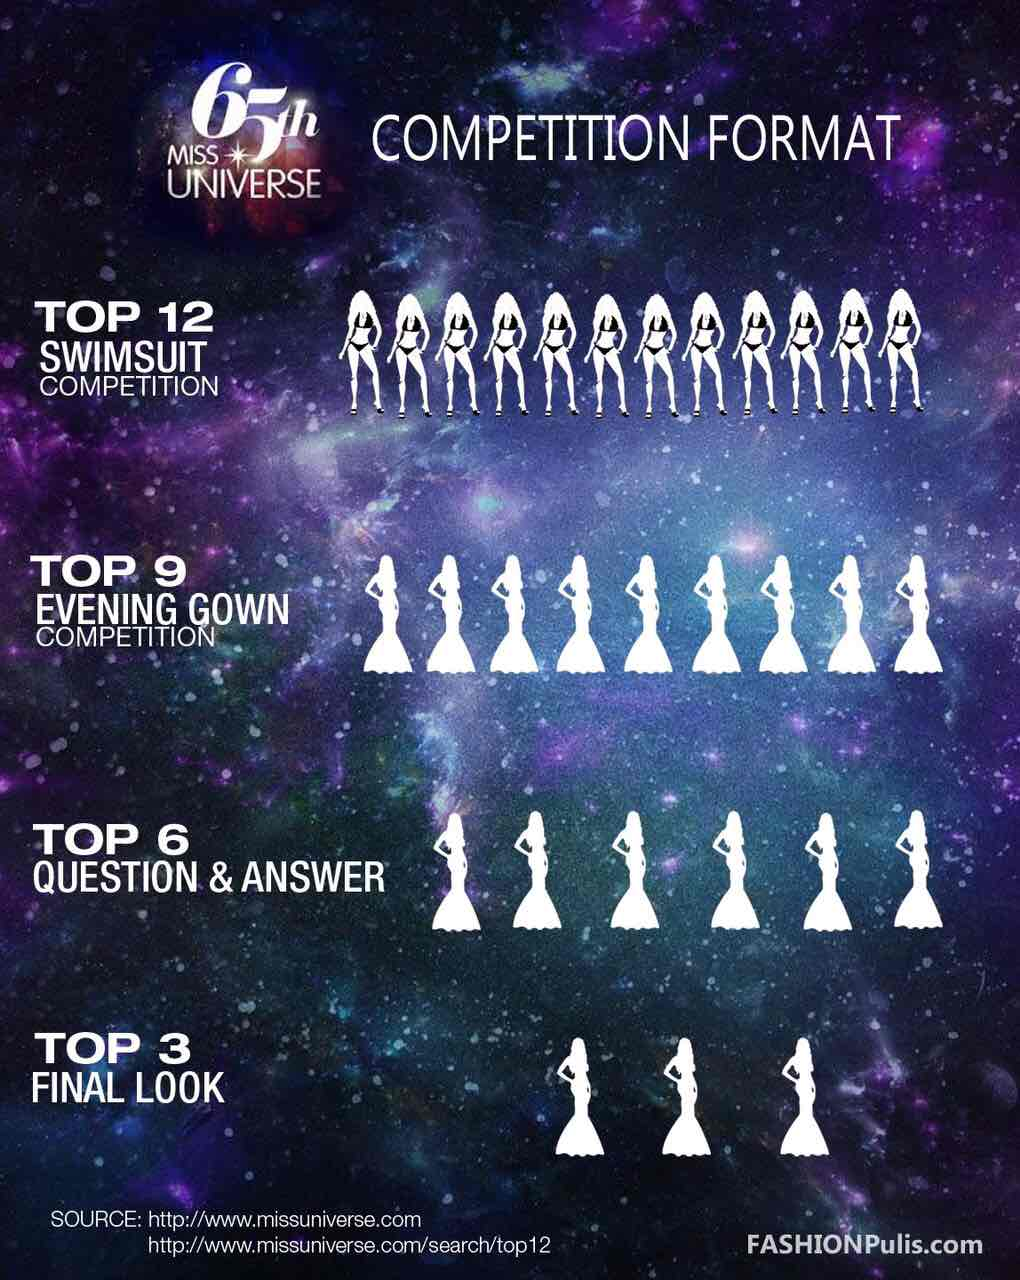 Miss Universe 2016 Competition Format